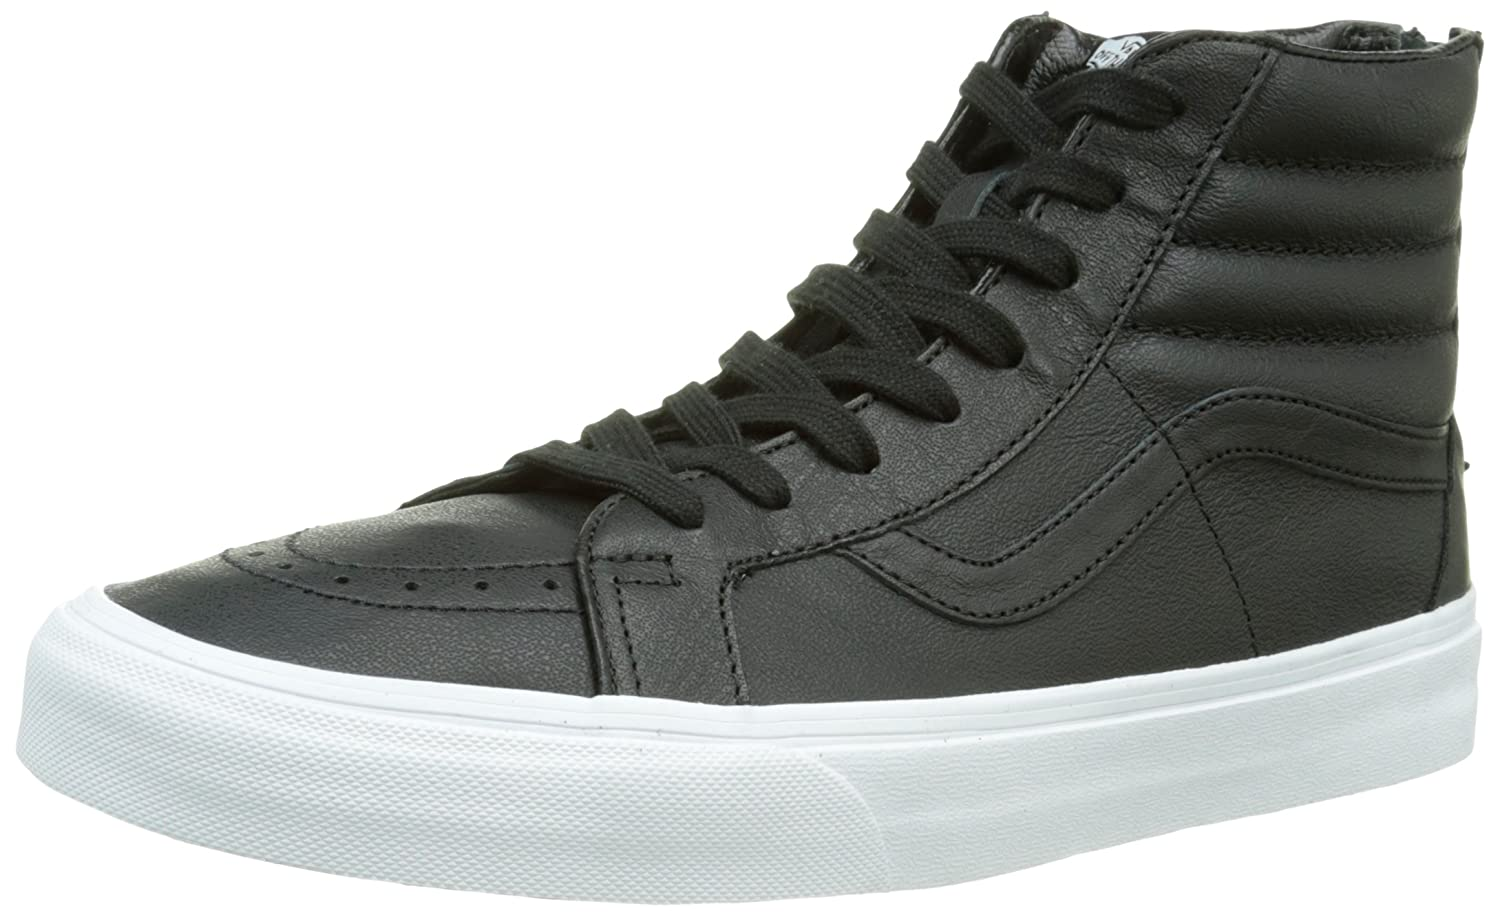 vans old skool nere alte amazon 113b0bda71f